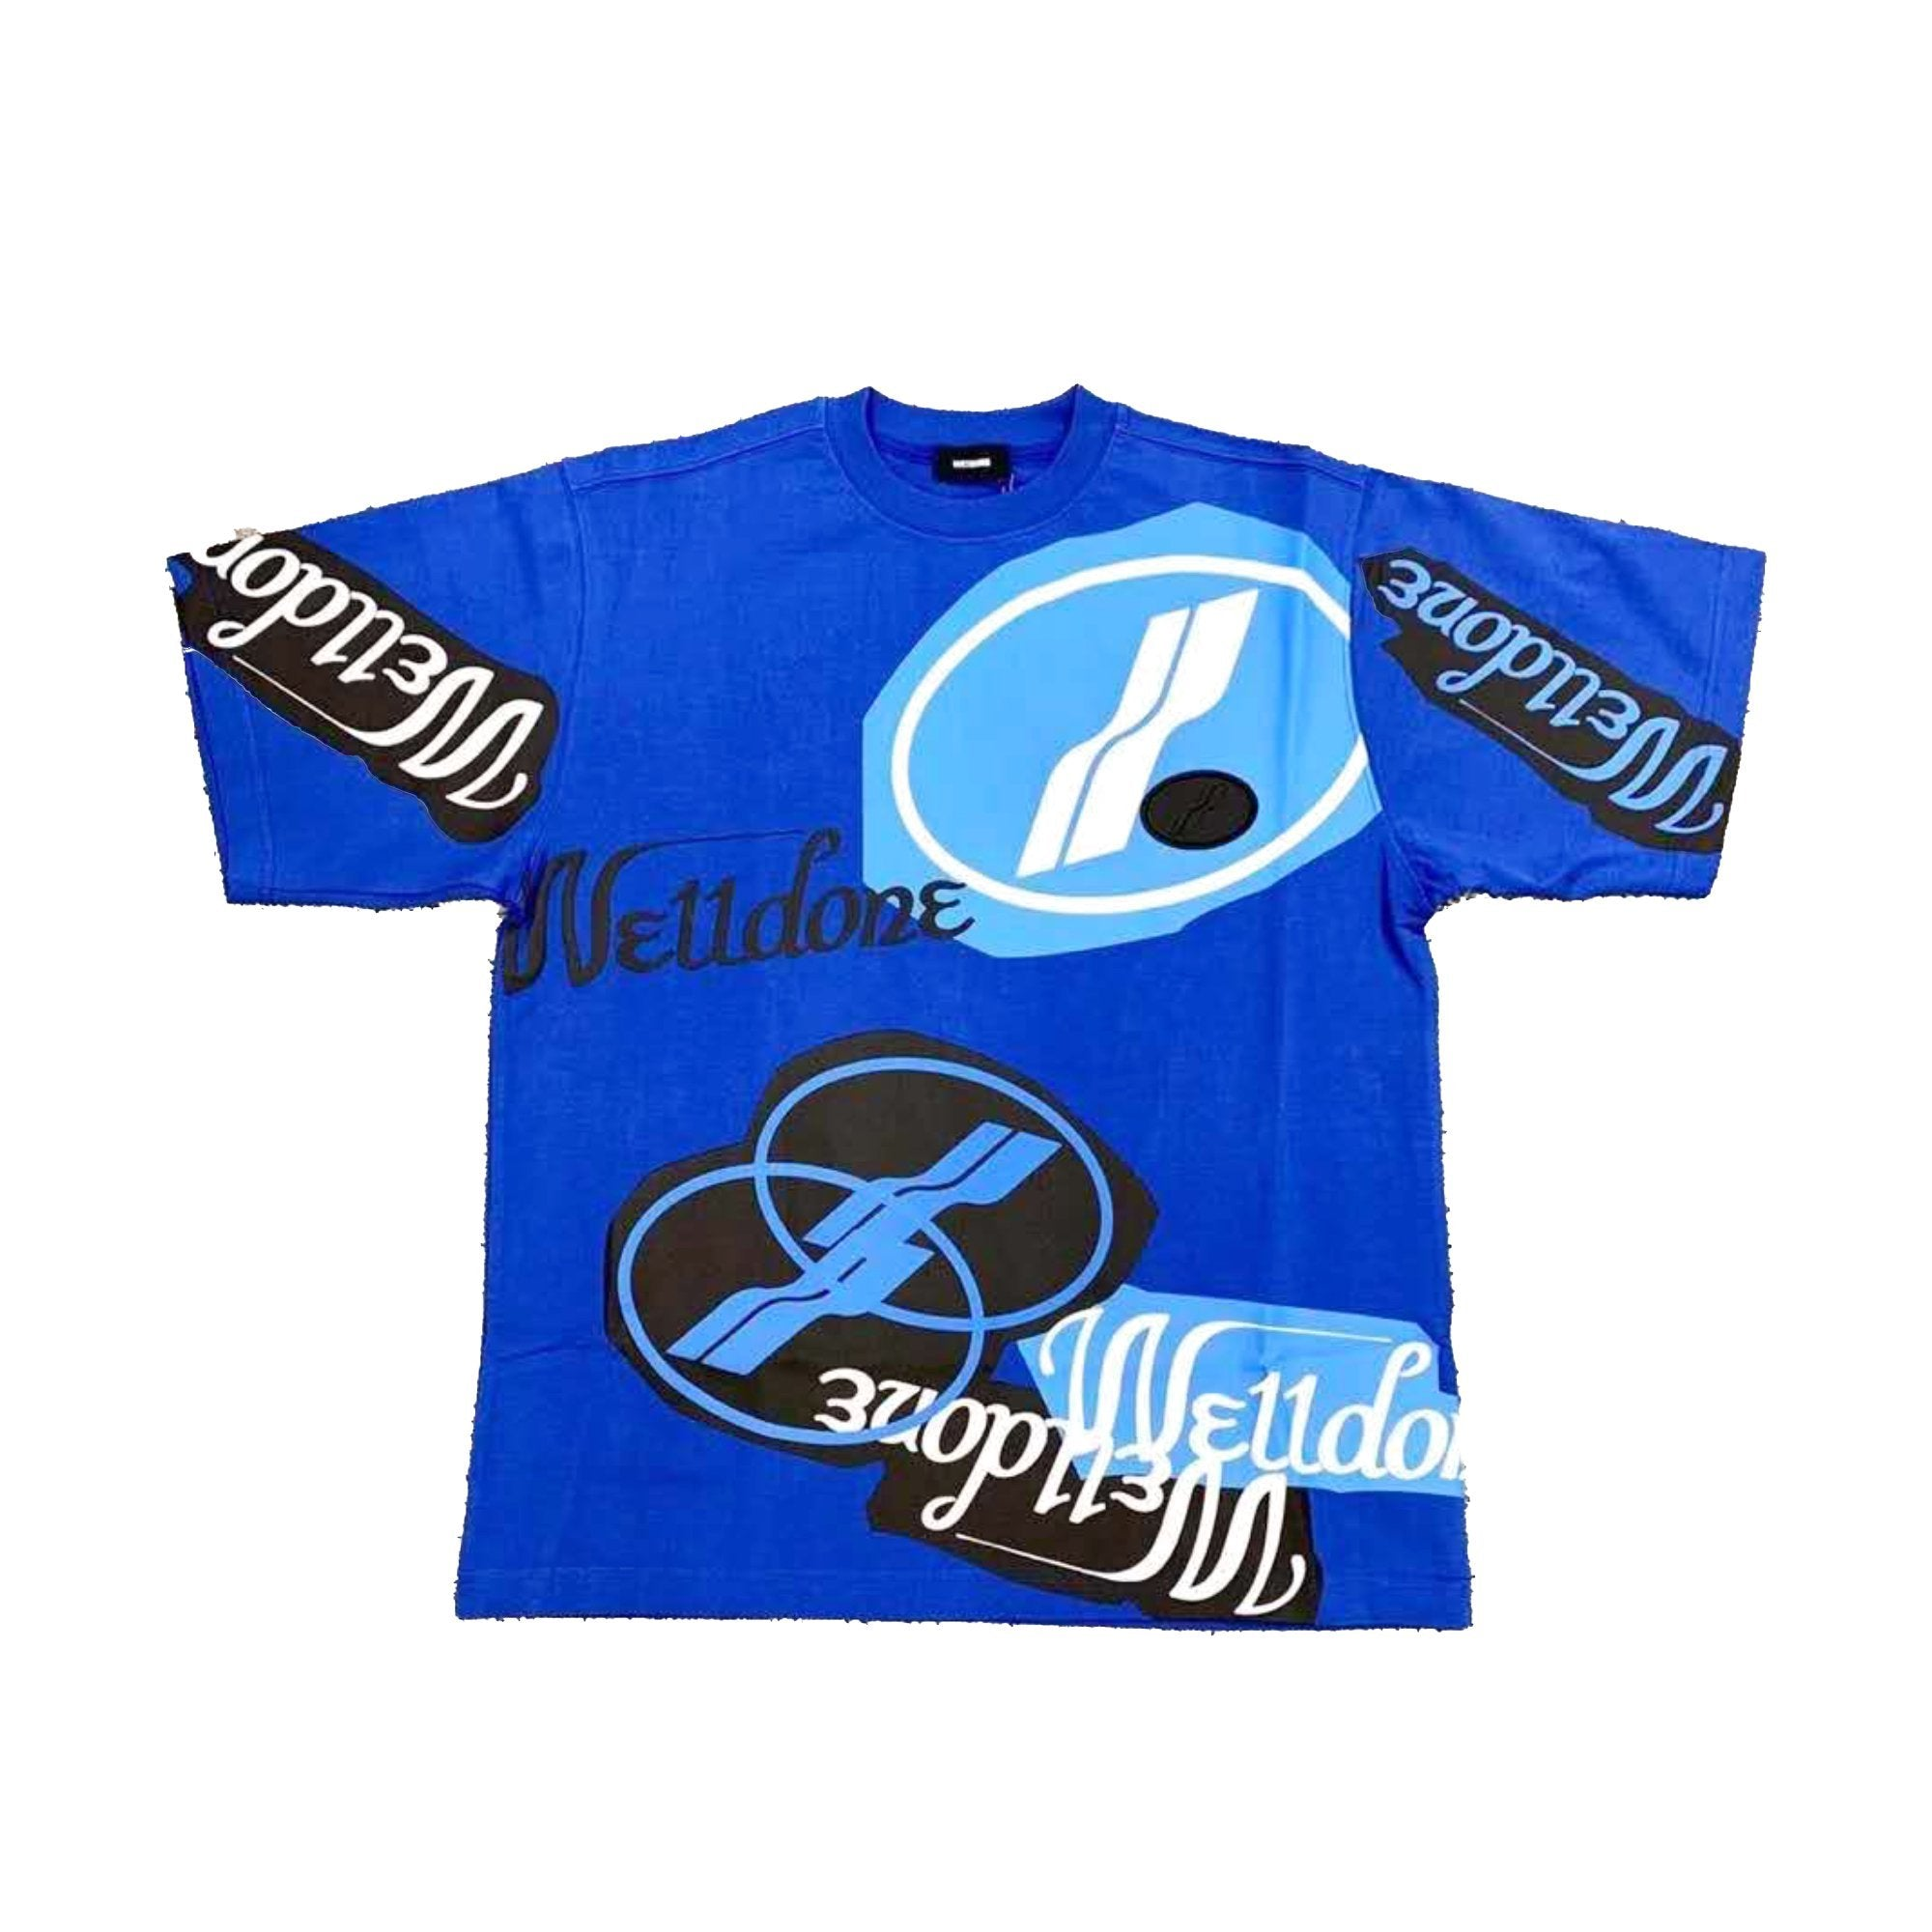 WE11DONE Blue Stacked Logo Tee | MADA IN CHINA